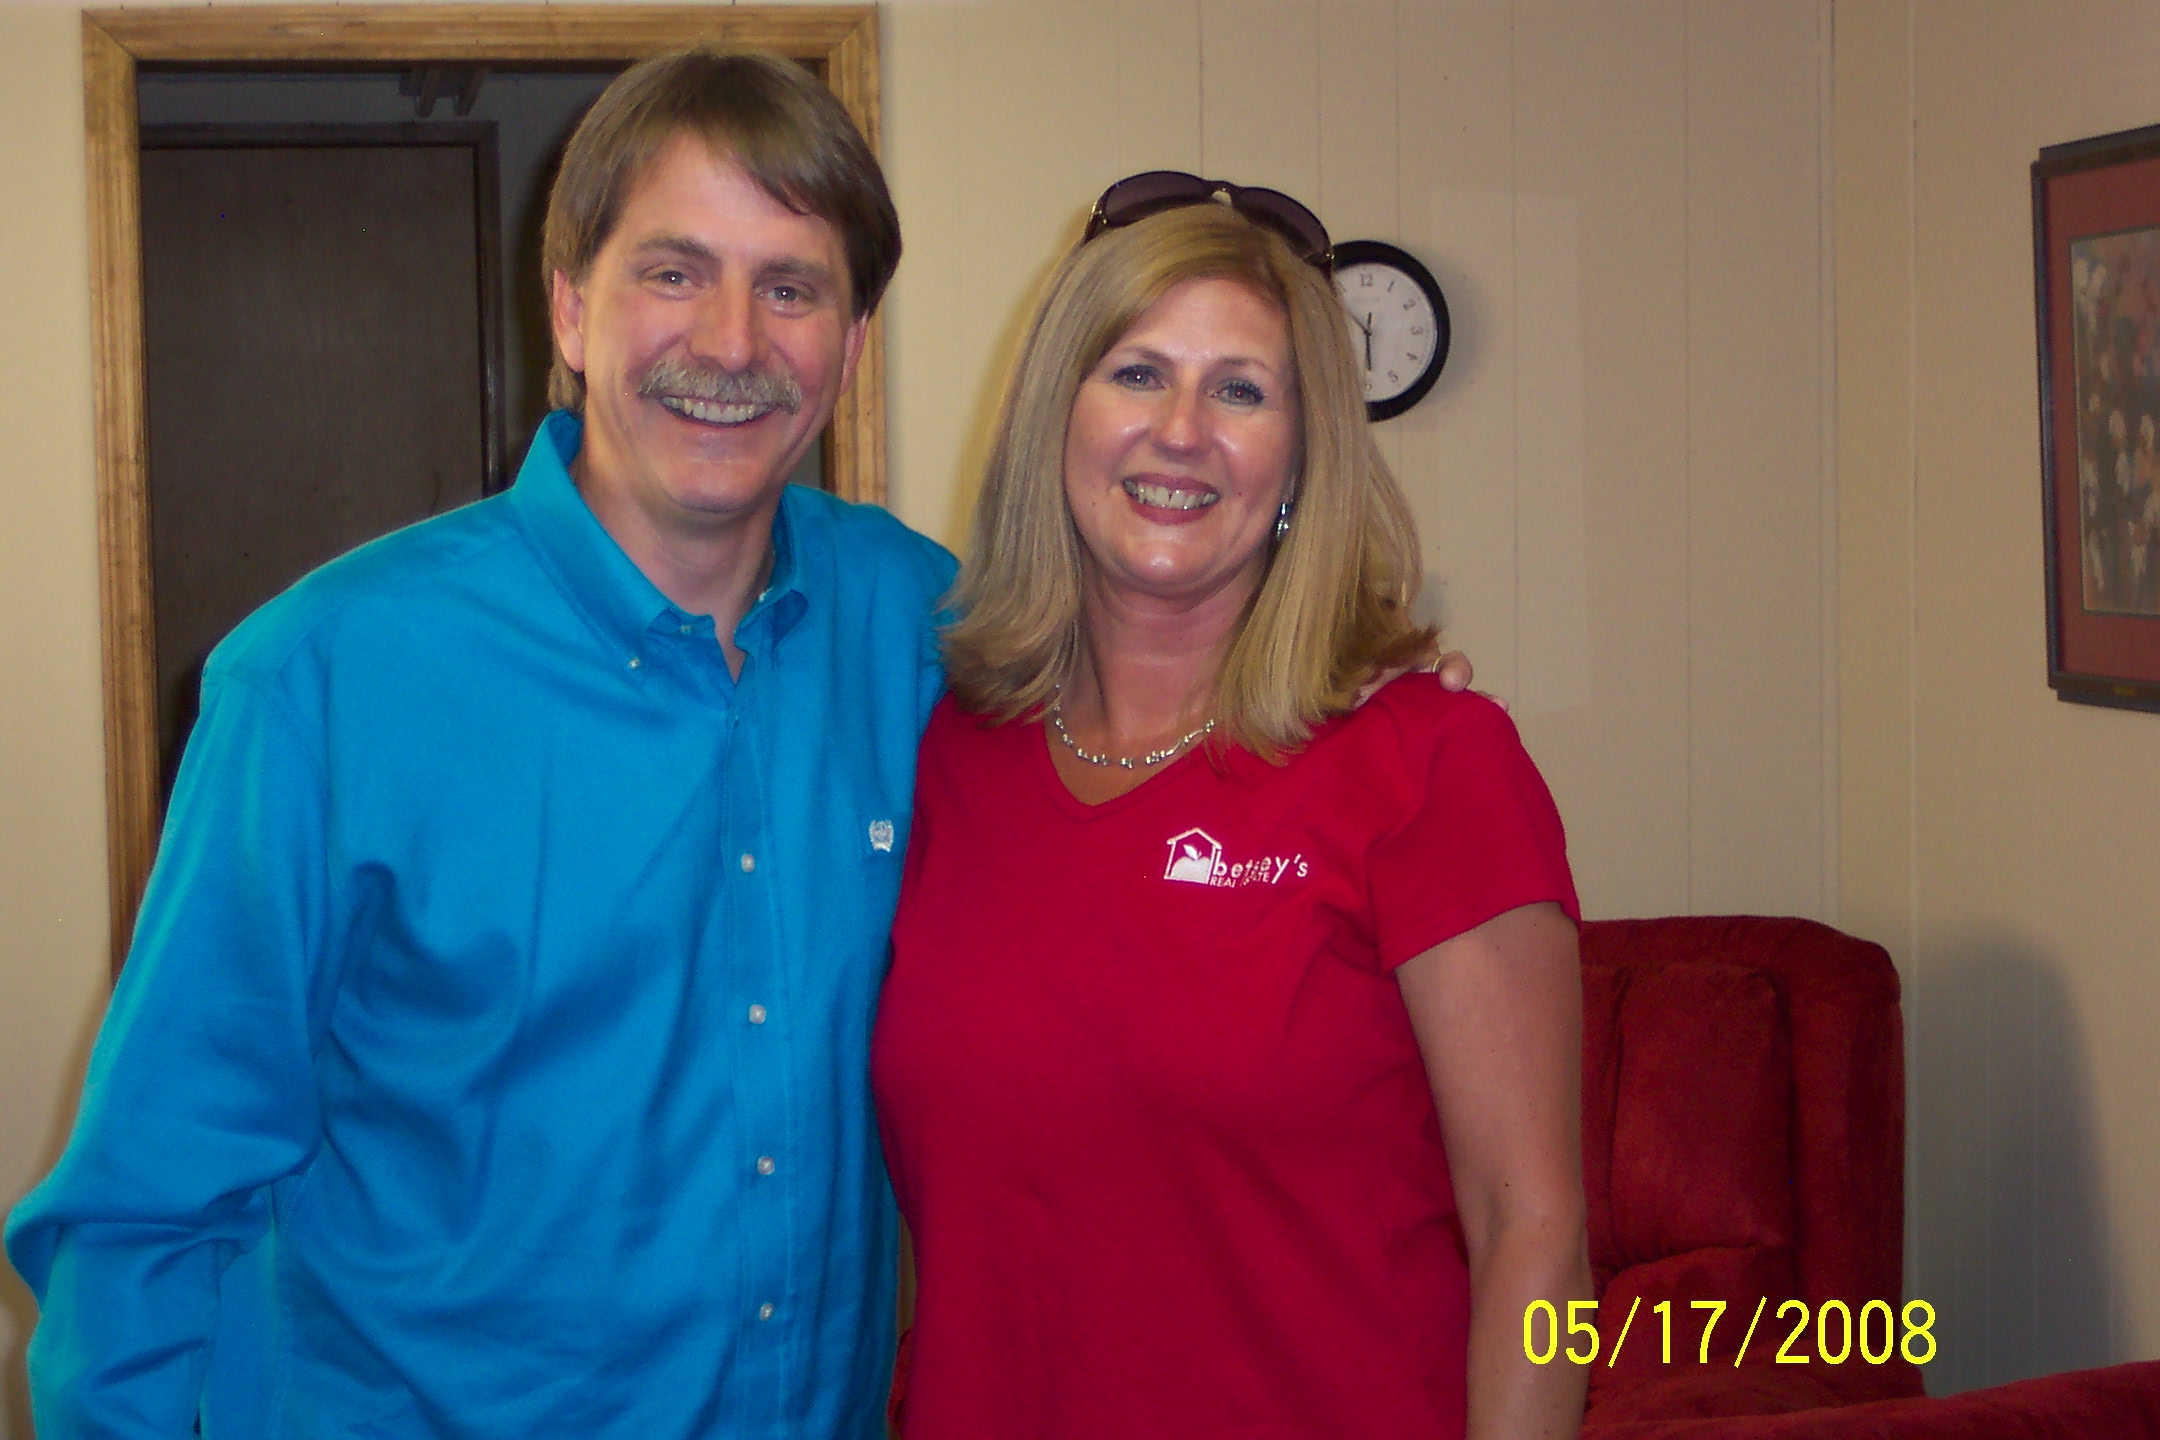 Jeff Foxworthy and me